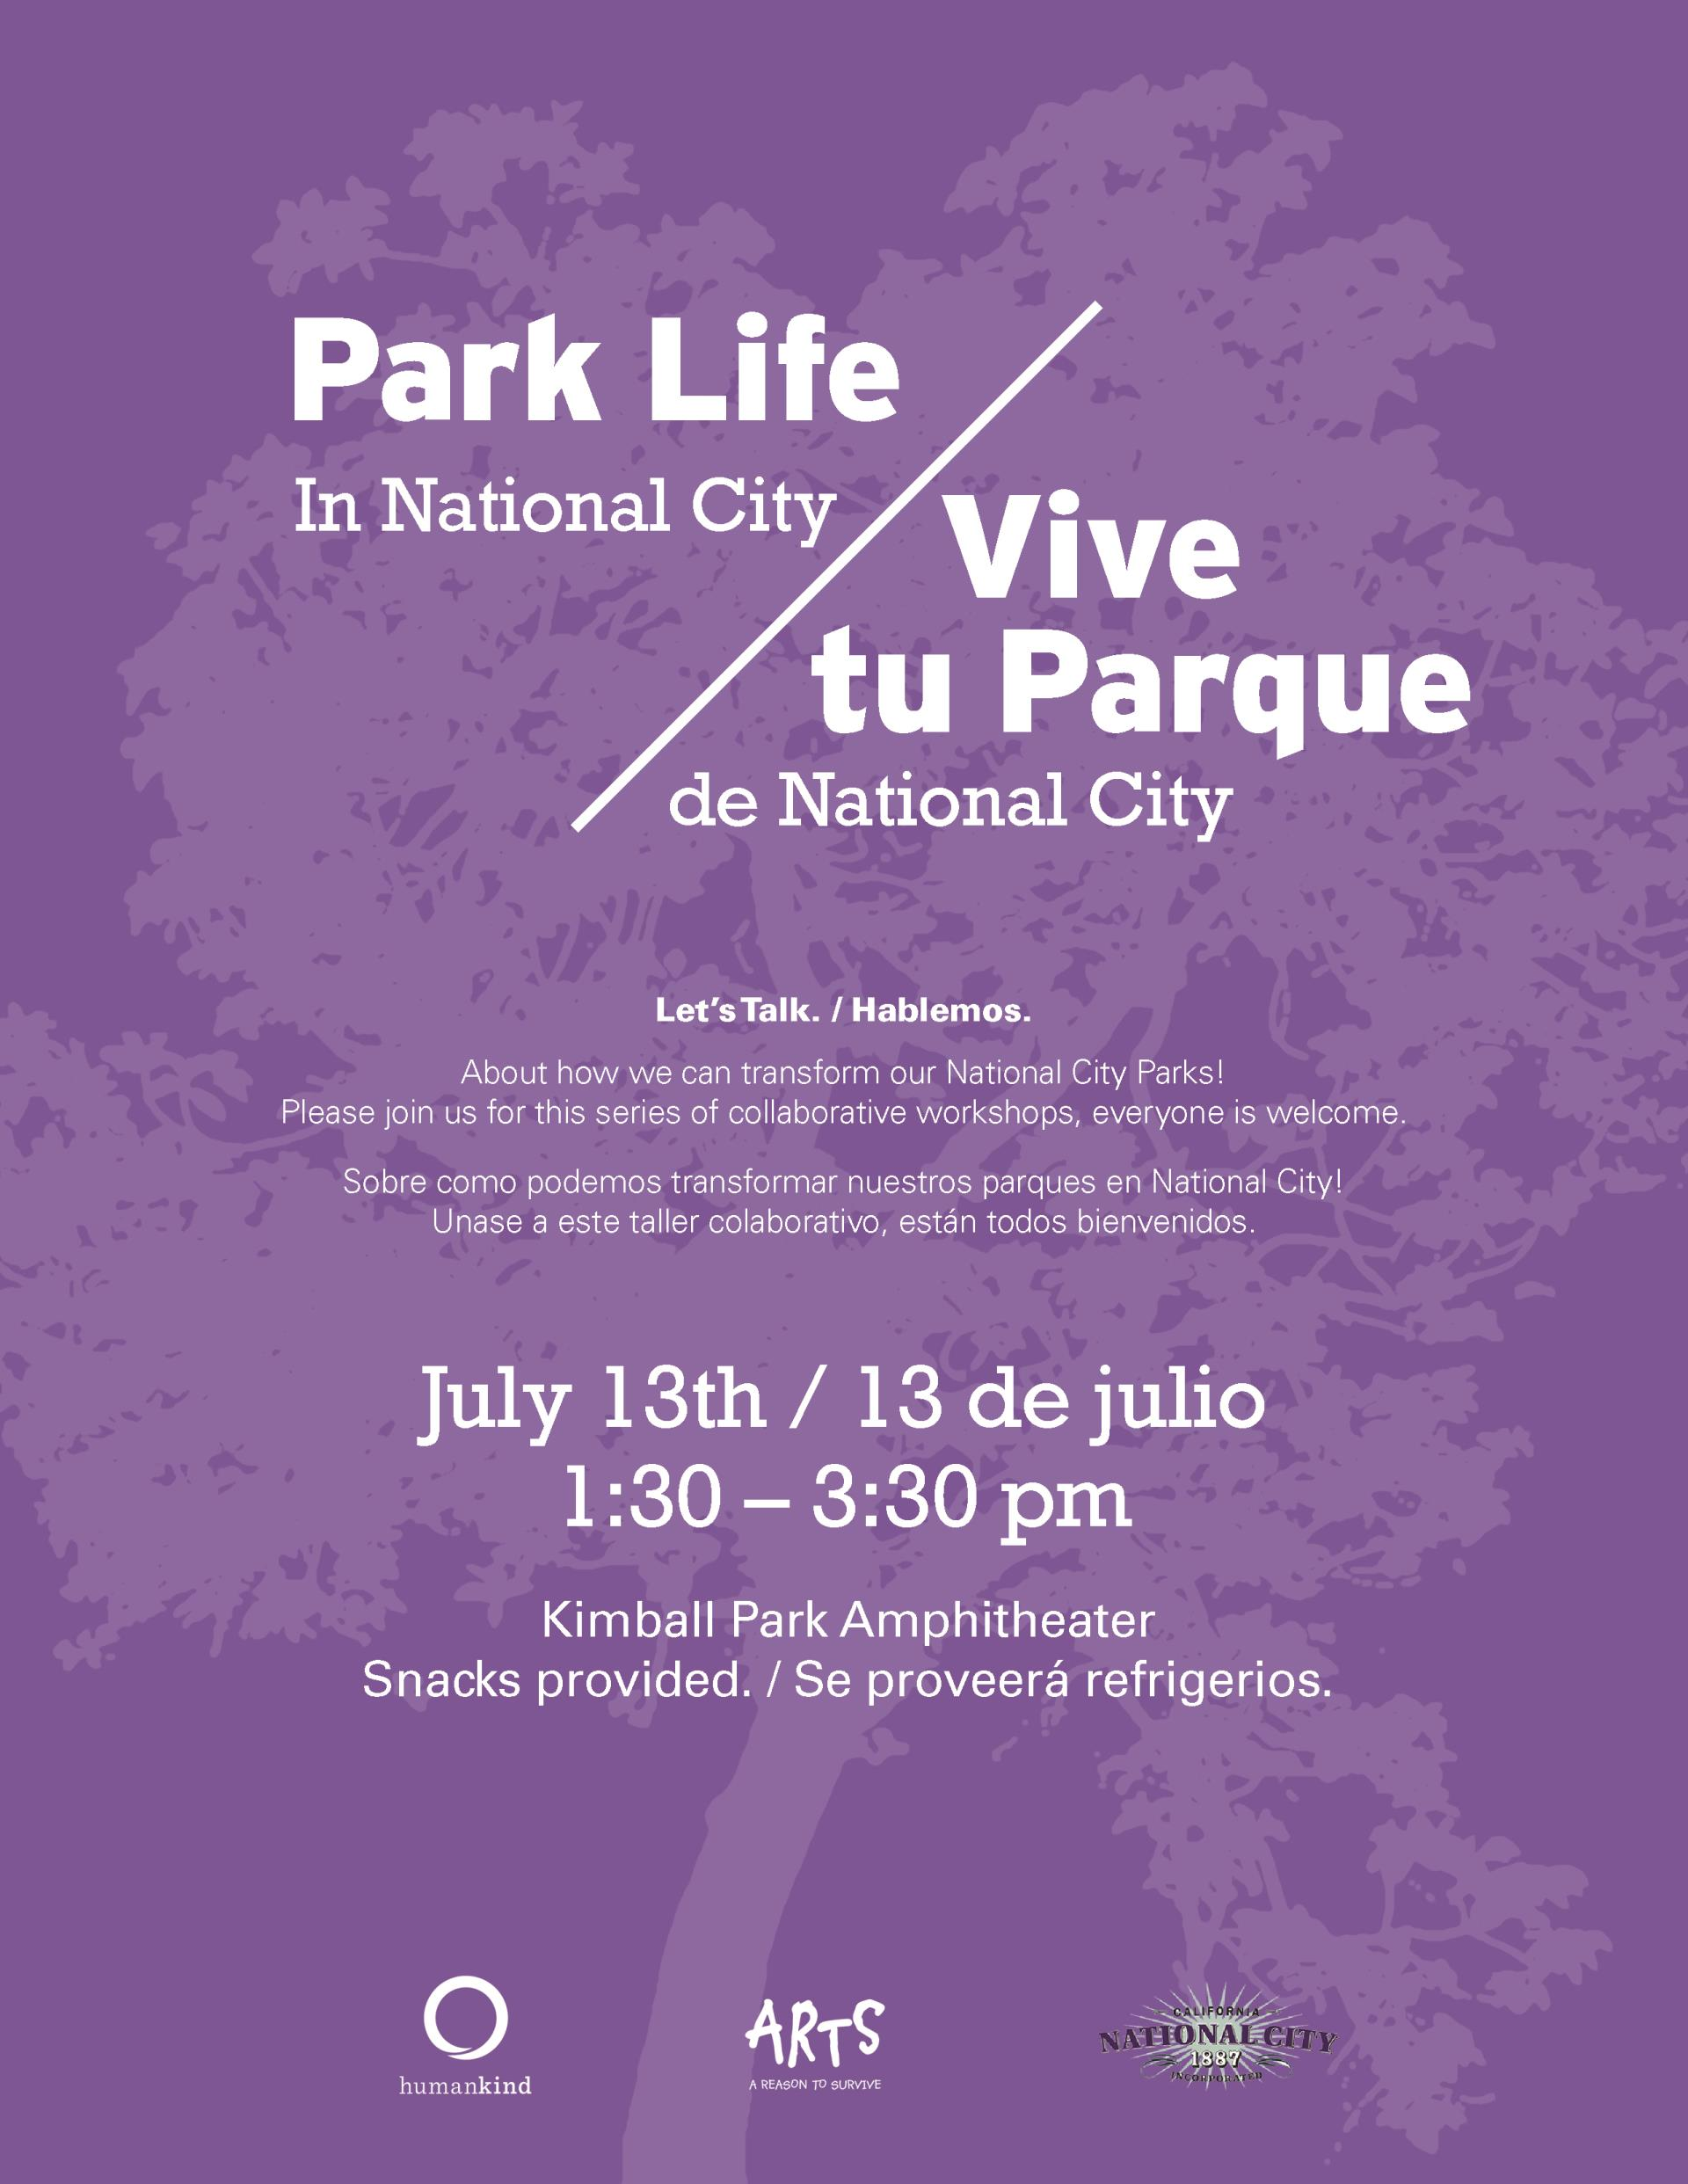 Park life event July 13